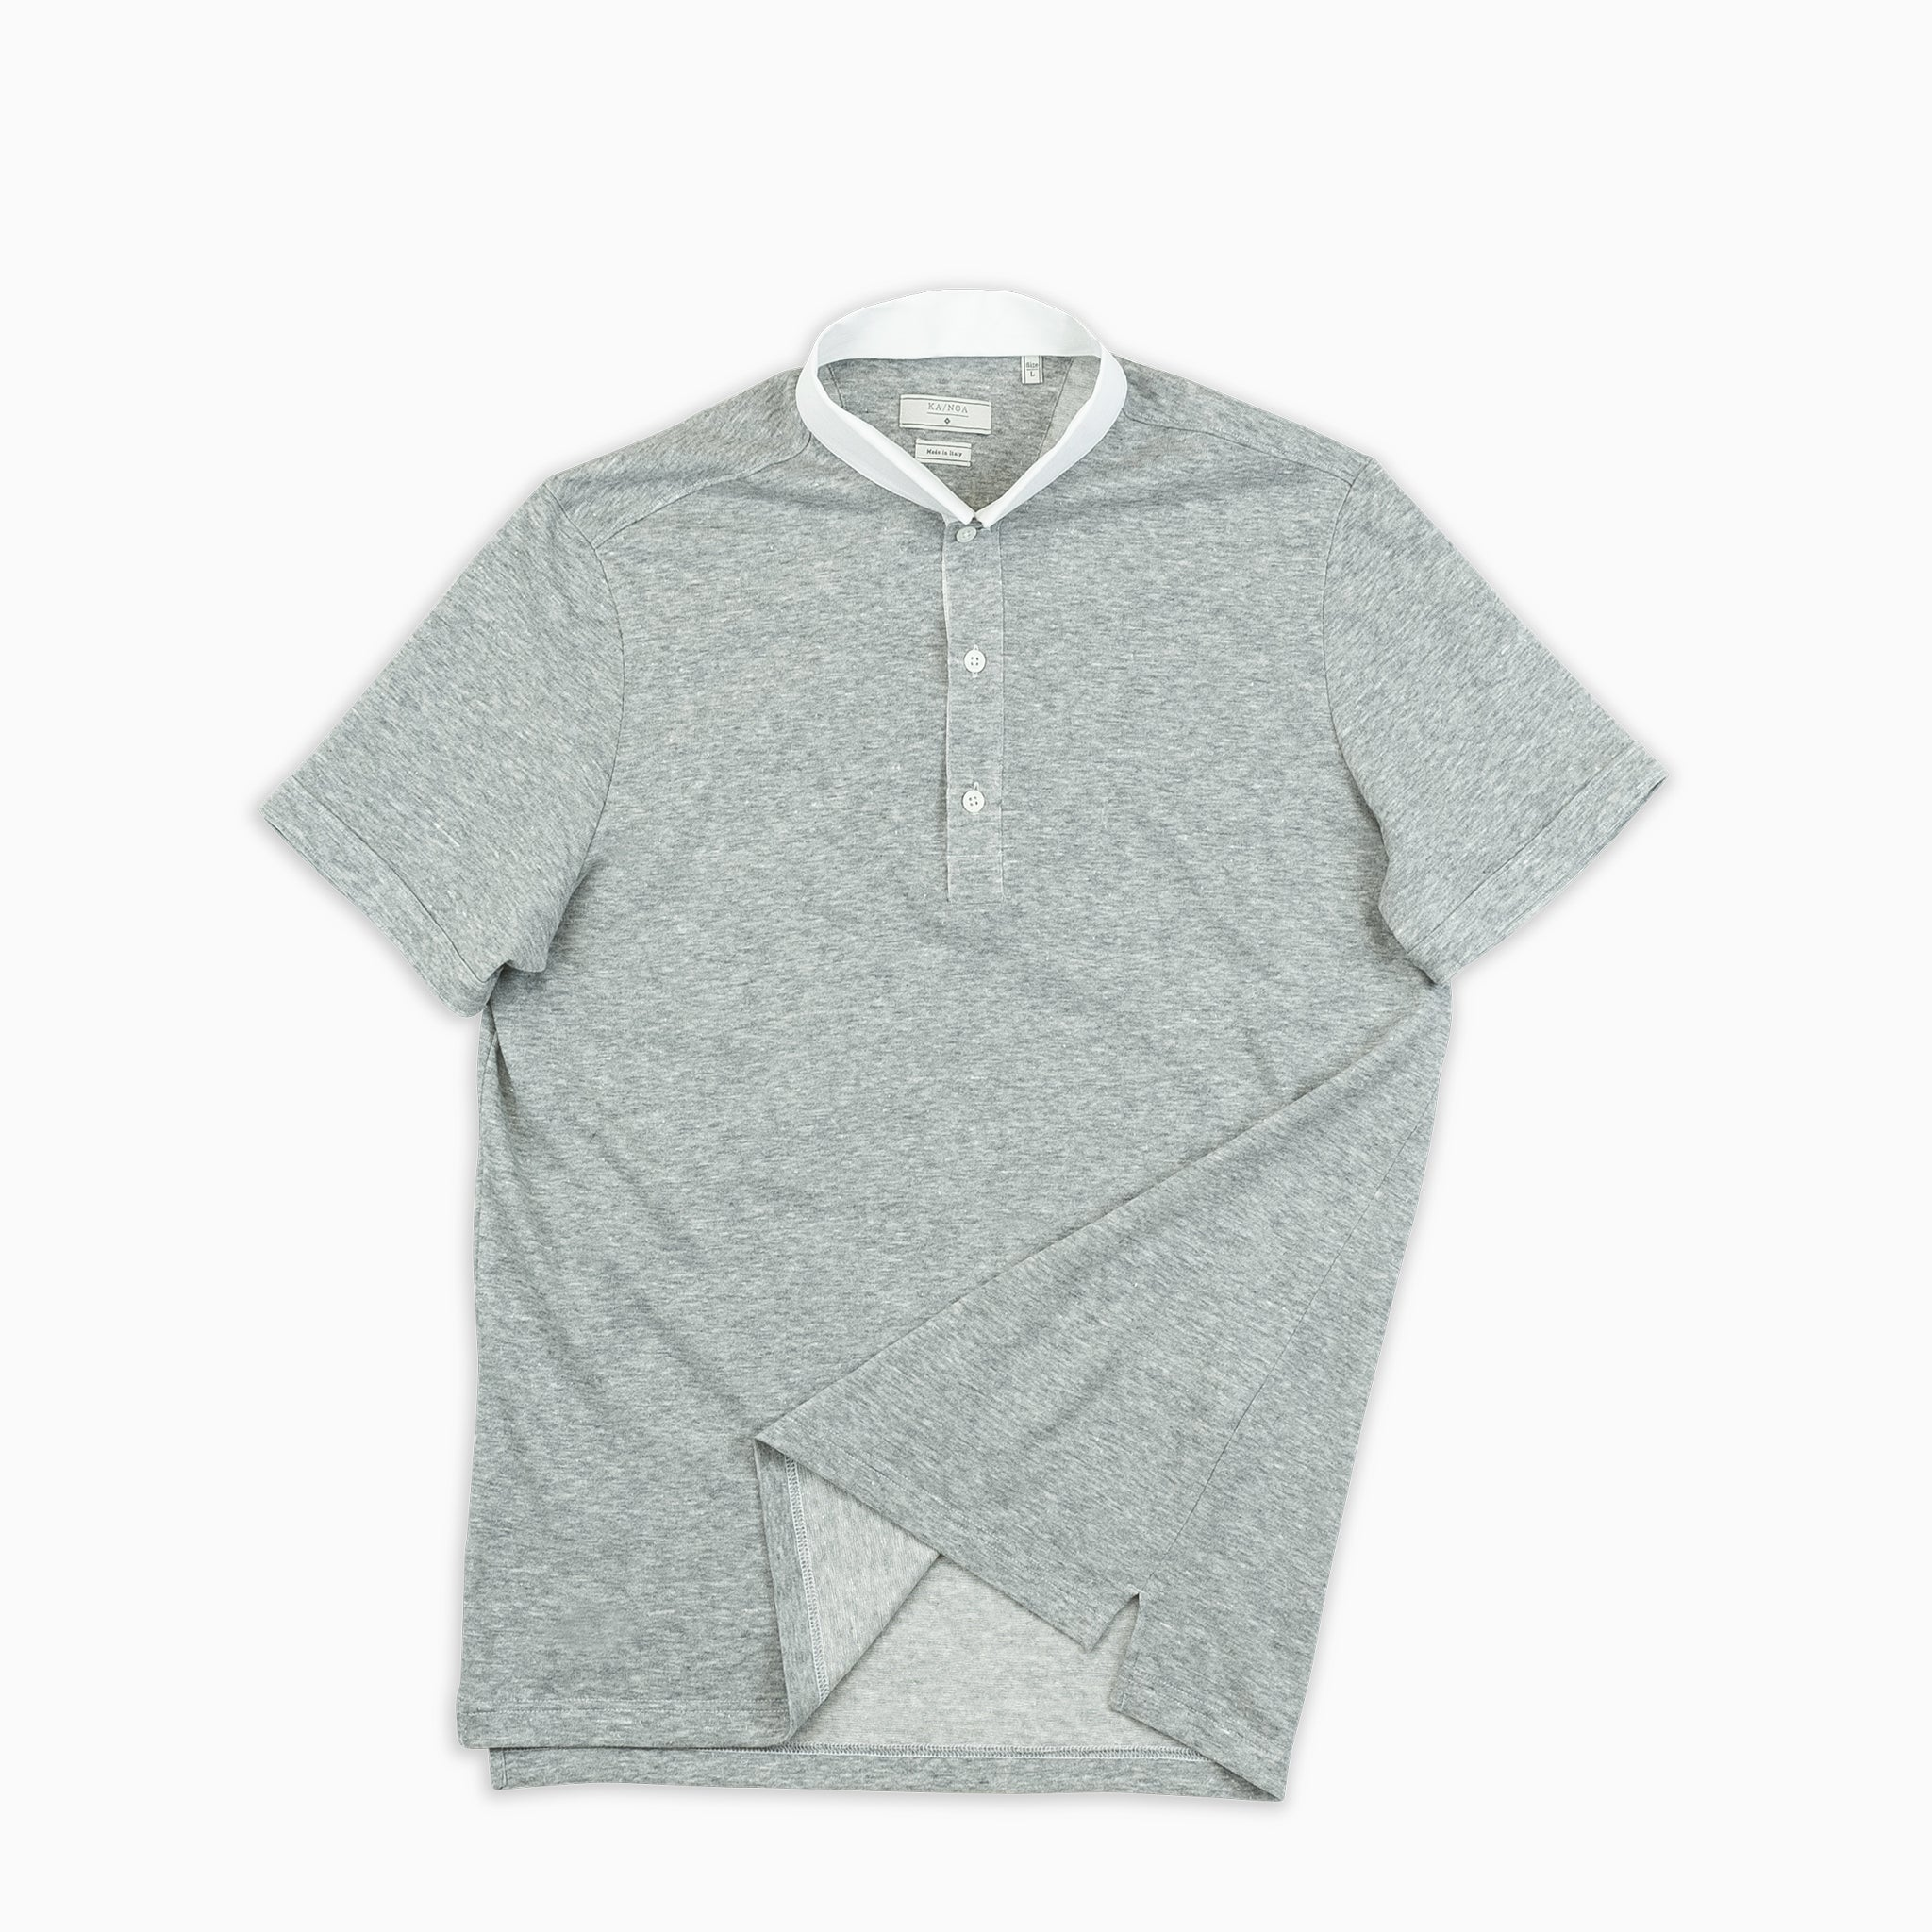 Martin short-sleeved polo in maxi-jersey linen/cotton (stone grey)